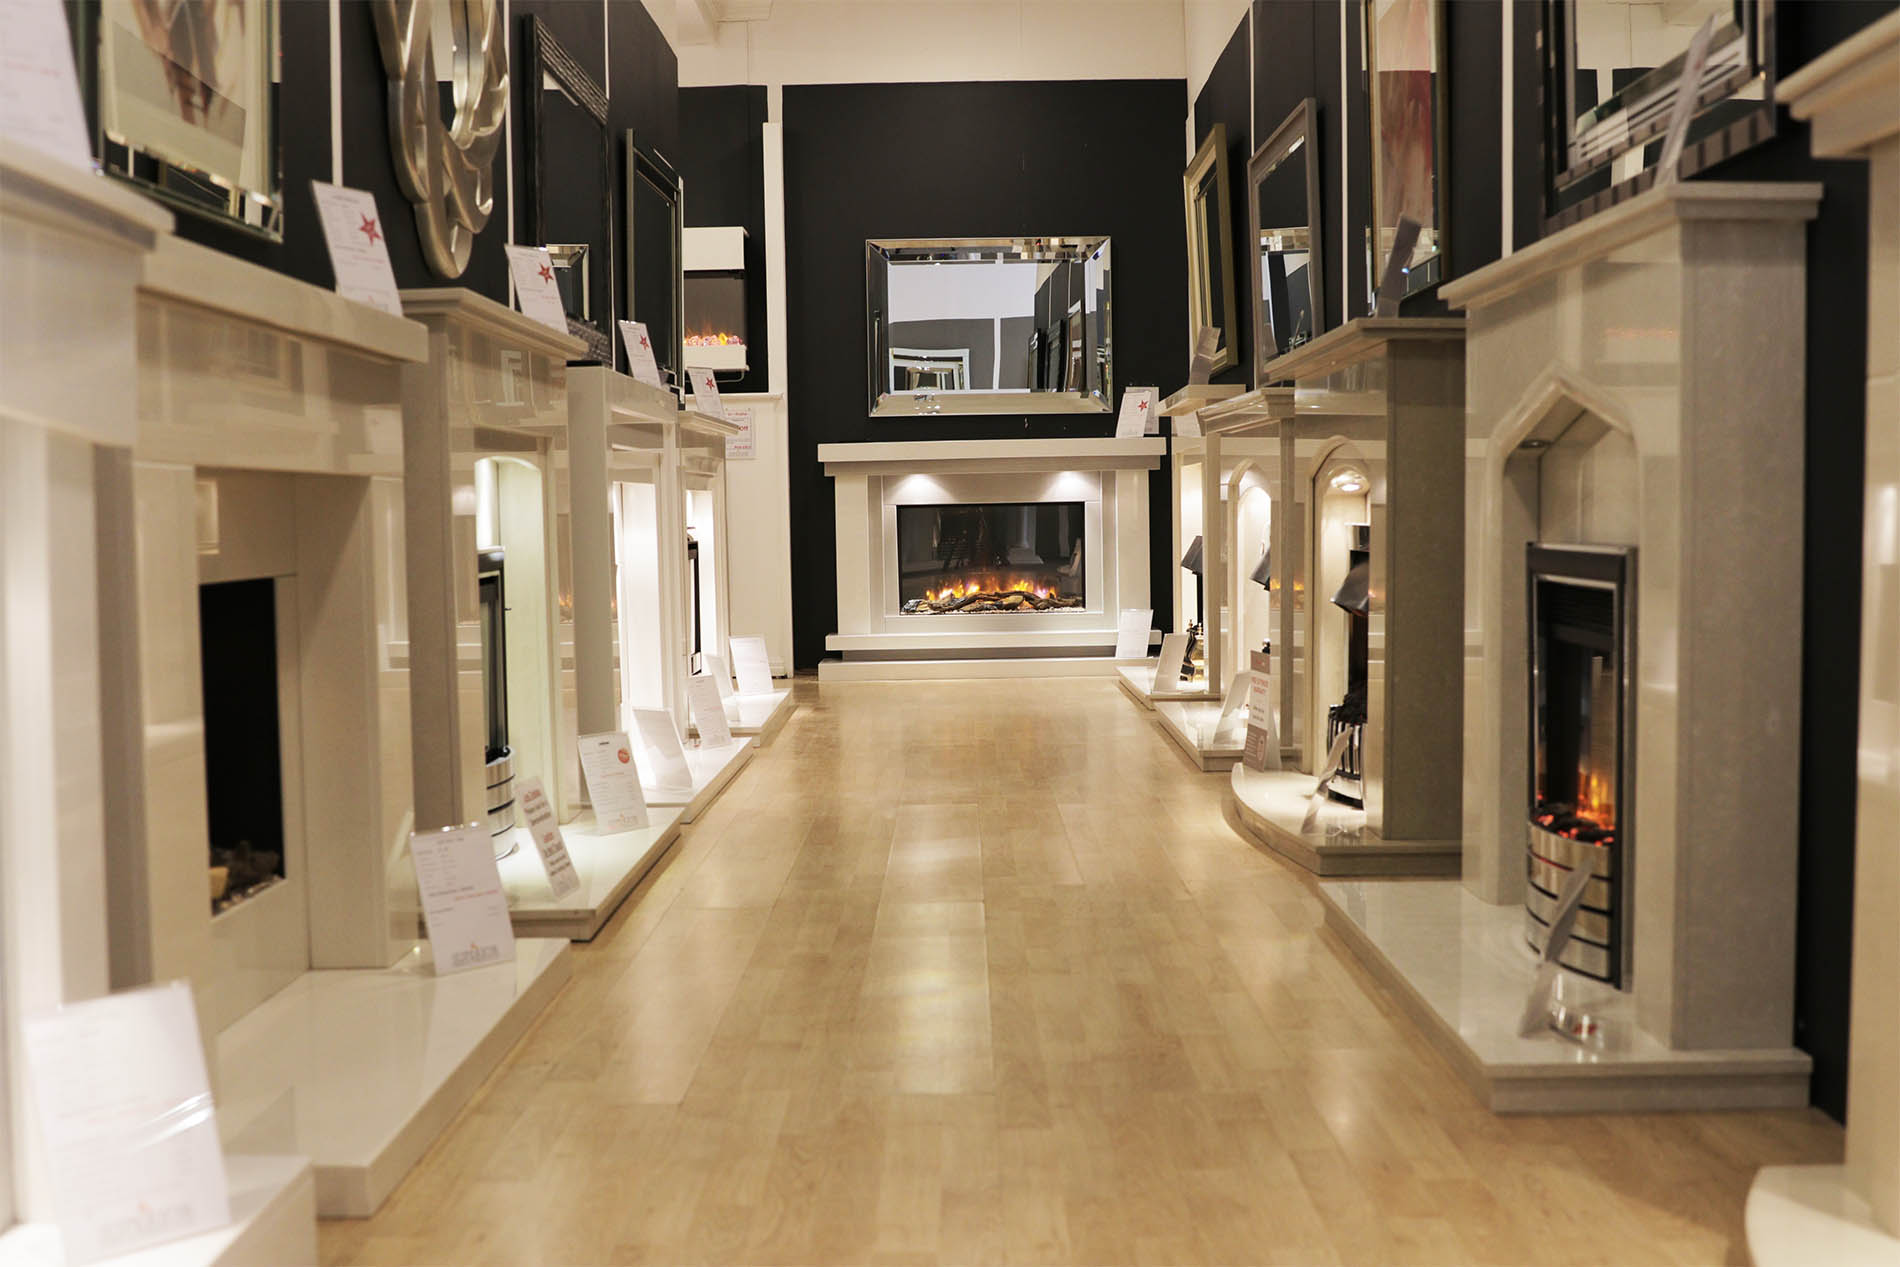 Marble Fireplace Aisle